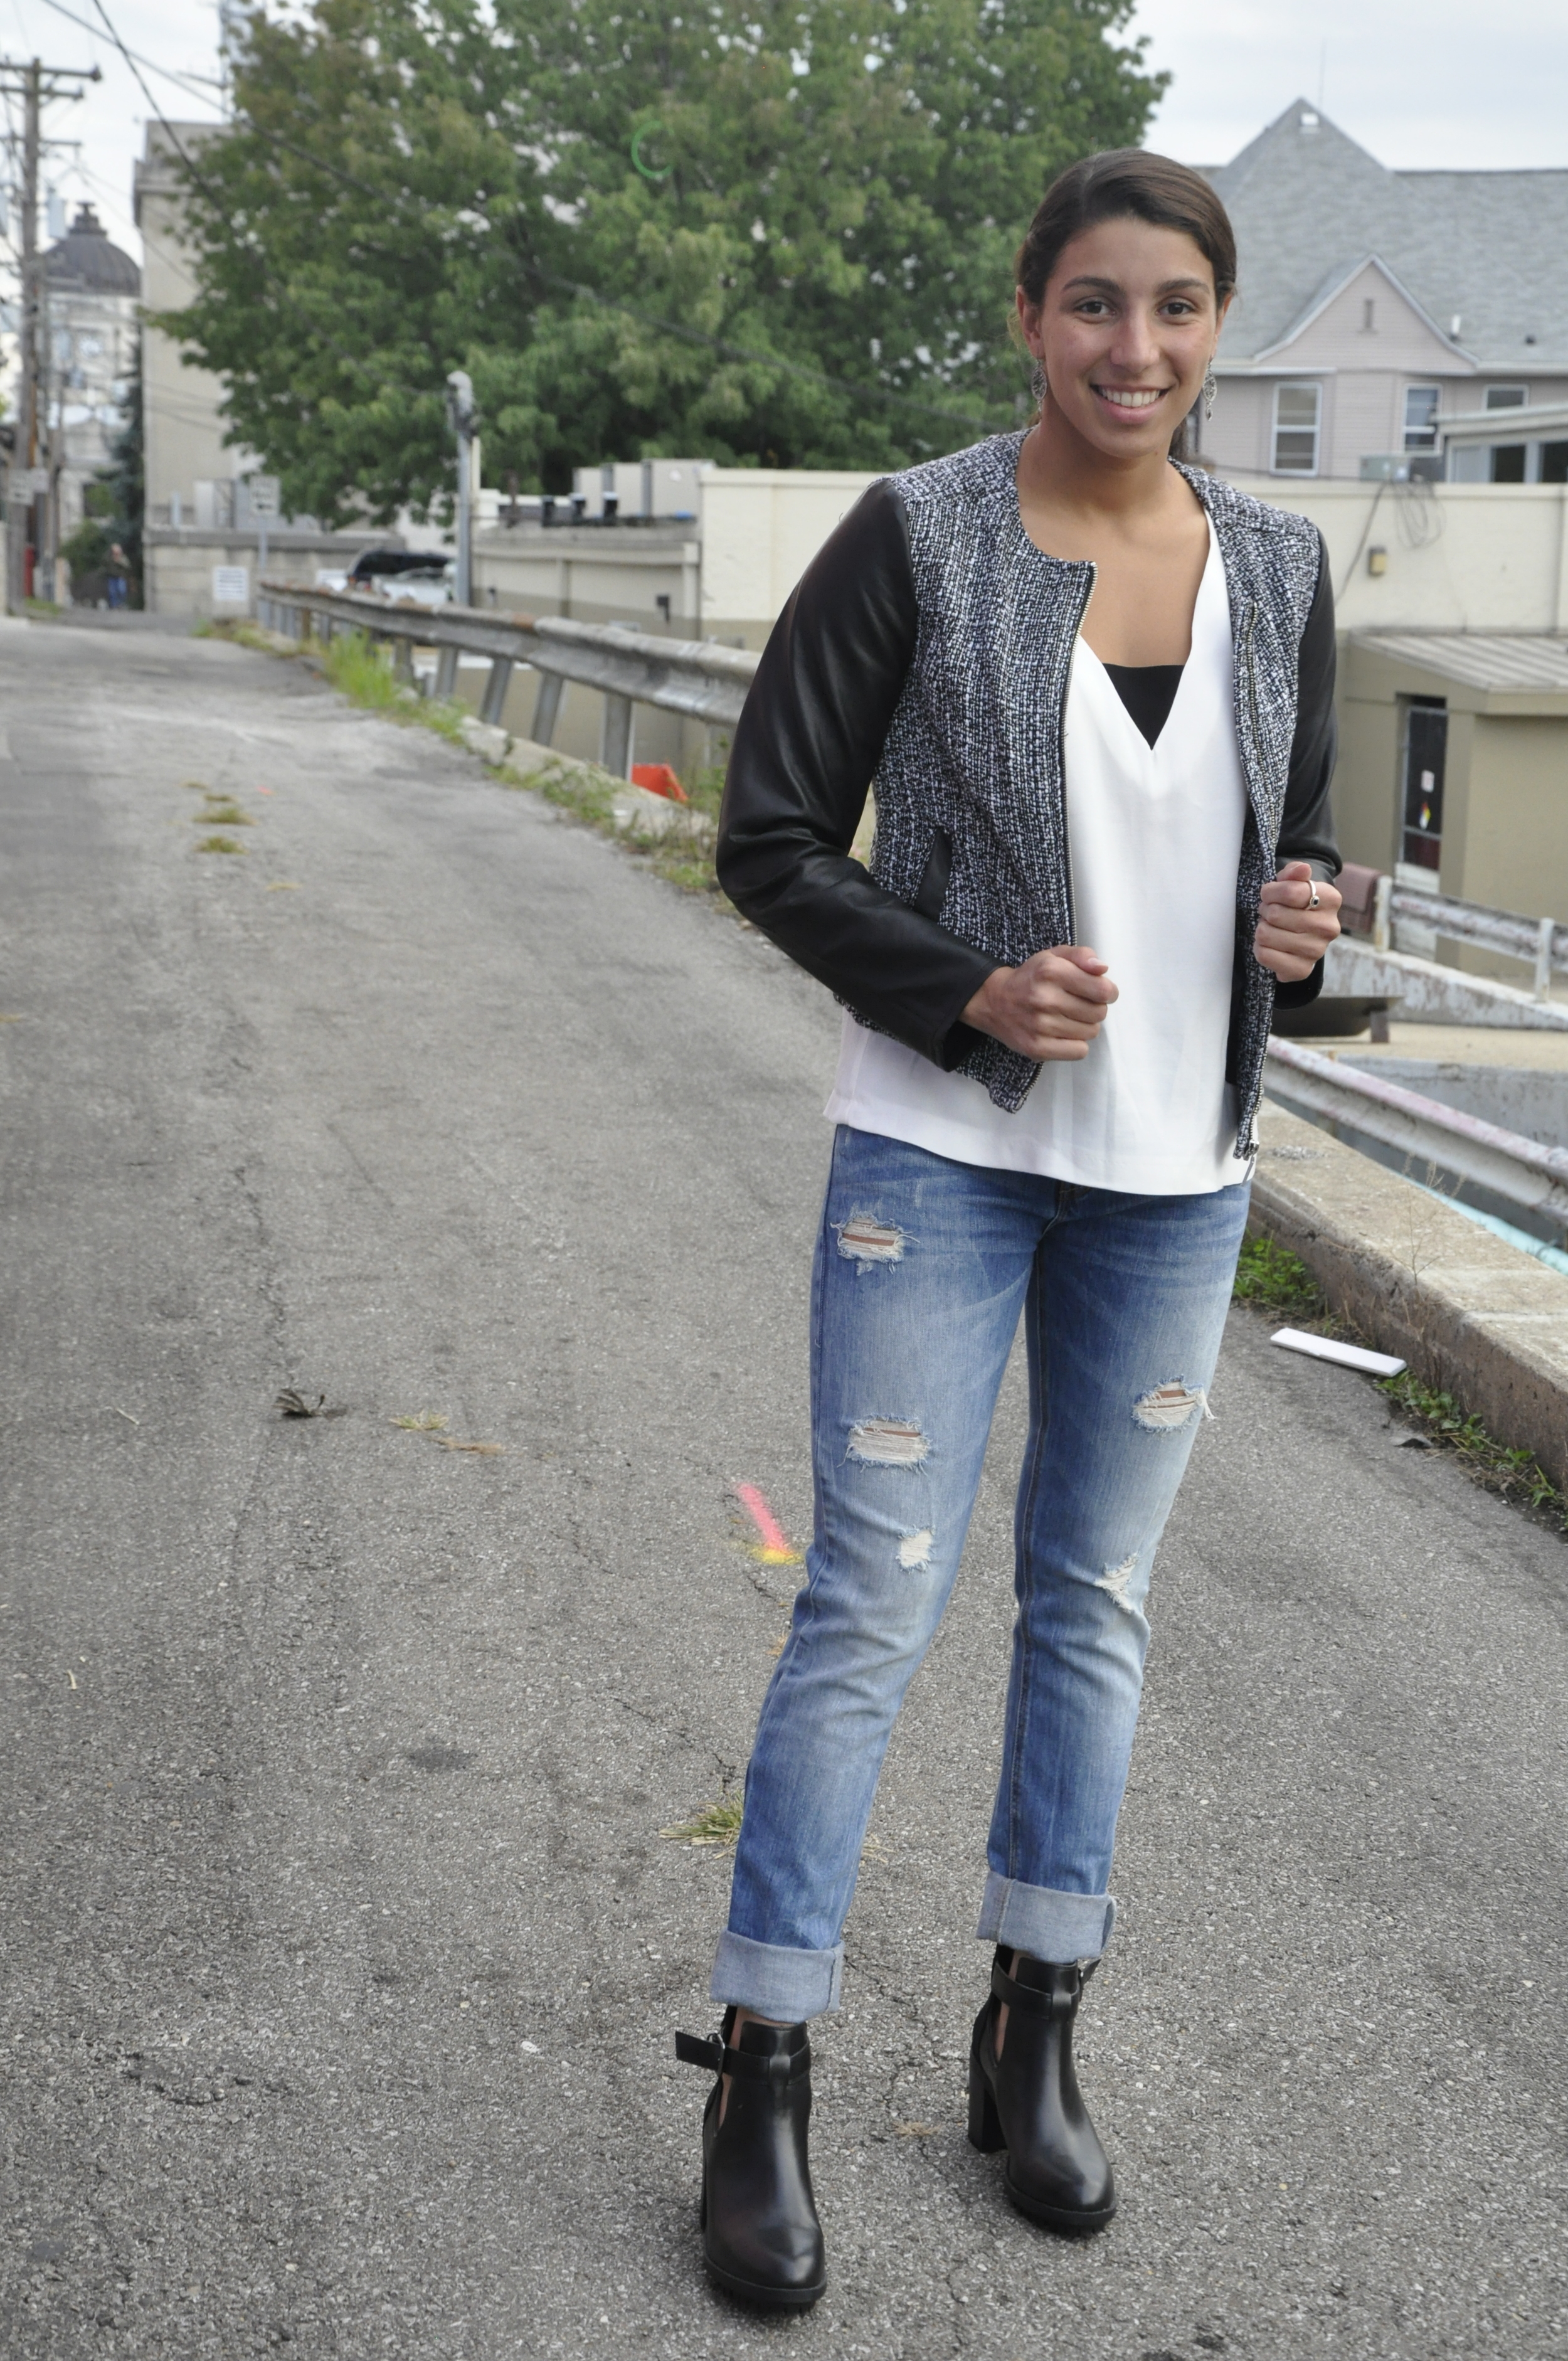 A cute pair of slightly torn jeans are an asset to any ladies' closet! Of course, try to stay away from the overwhelmingly ripped jeans. These Zara bottoms help to make this look more casual while still maintaing the chic factor that we are all going for. The light wash of the jeans takes the severity out of the all black and white top/jacket.